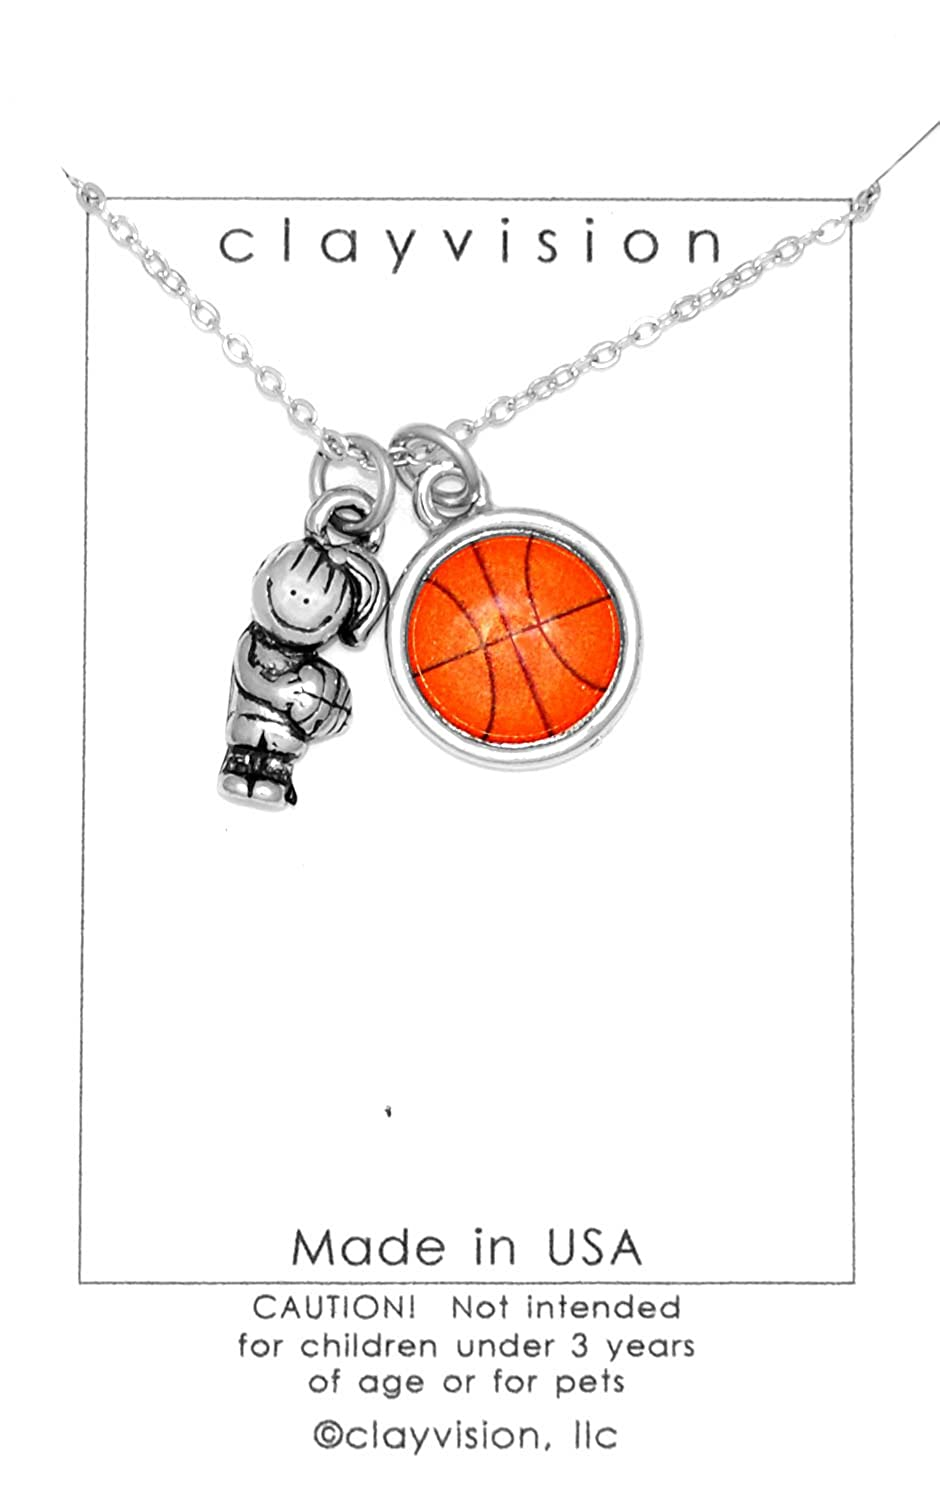 Clayvision Hoops Girl with a Color Basketball Charm on a Necklace